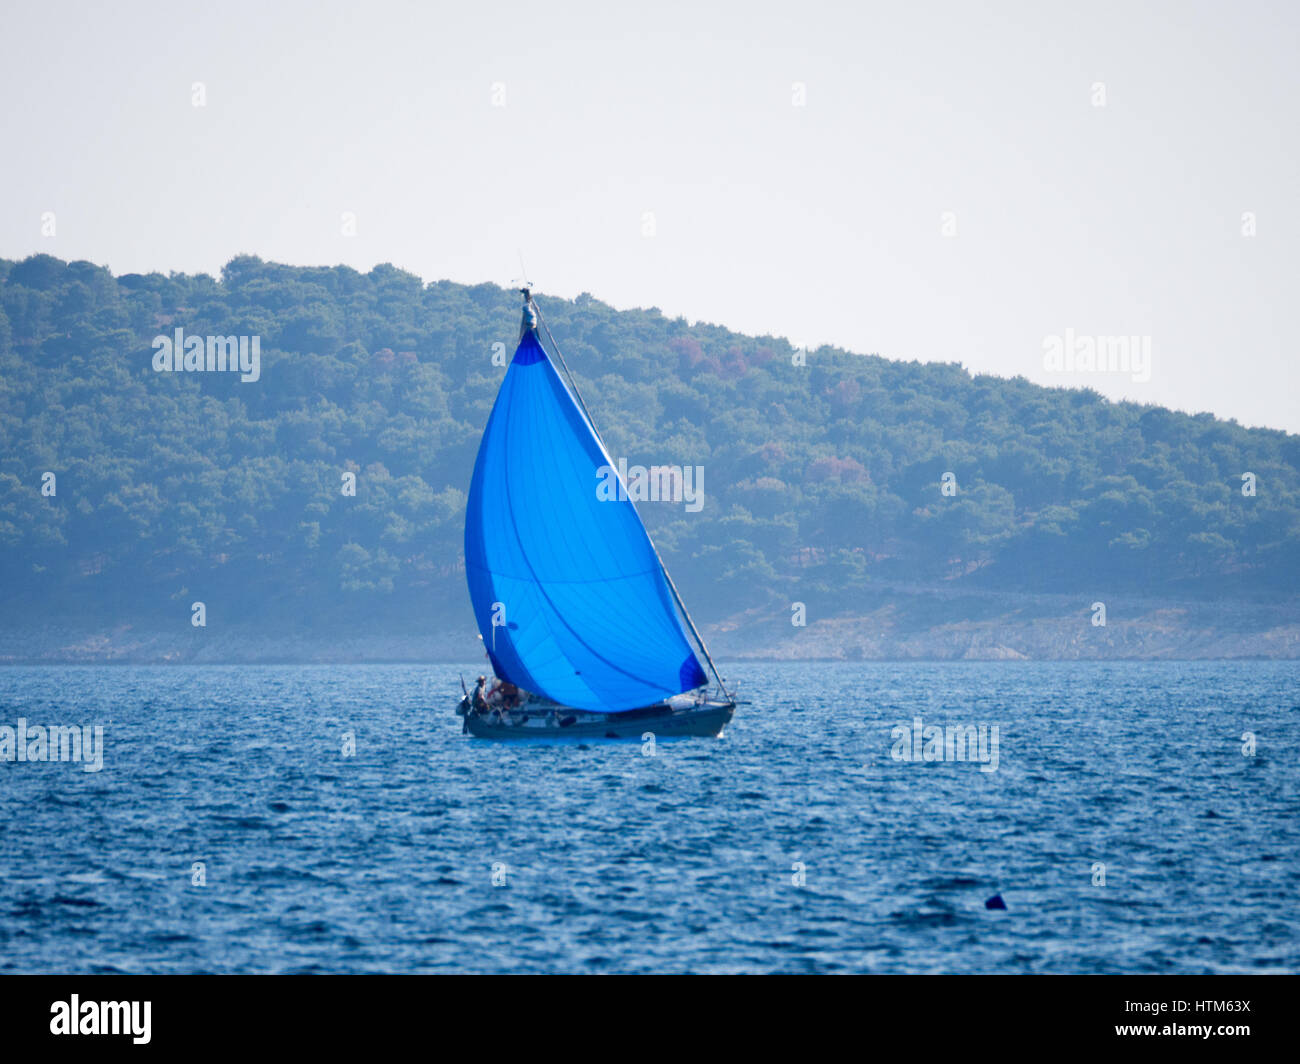 a yacht sailboat boat with blue sail sails sailing on the sea ocean Mediterranean under a blue sky  on calm waters - Stock Image